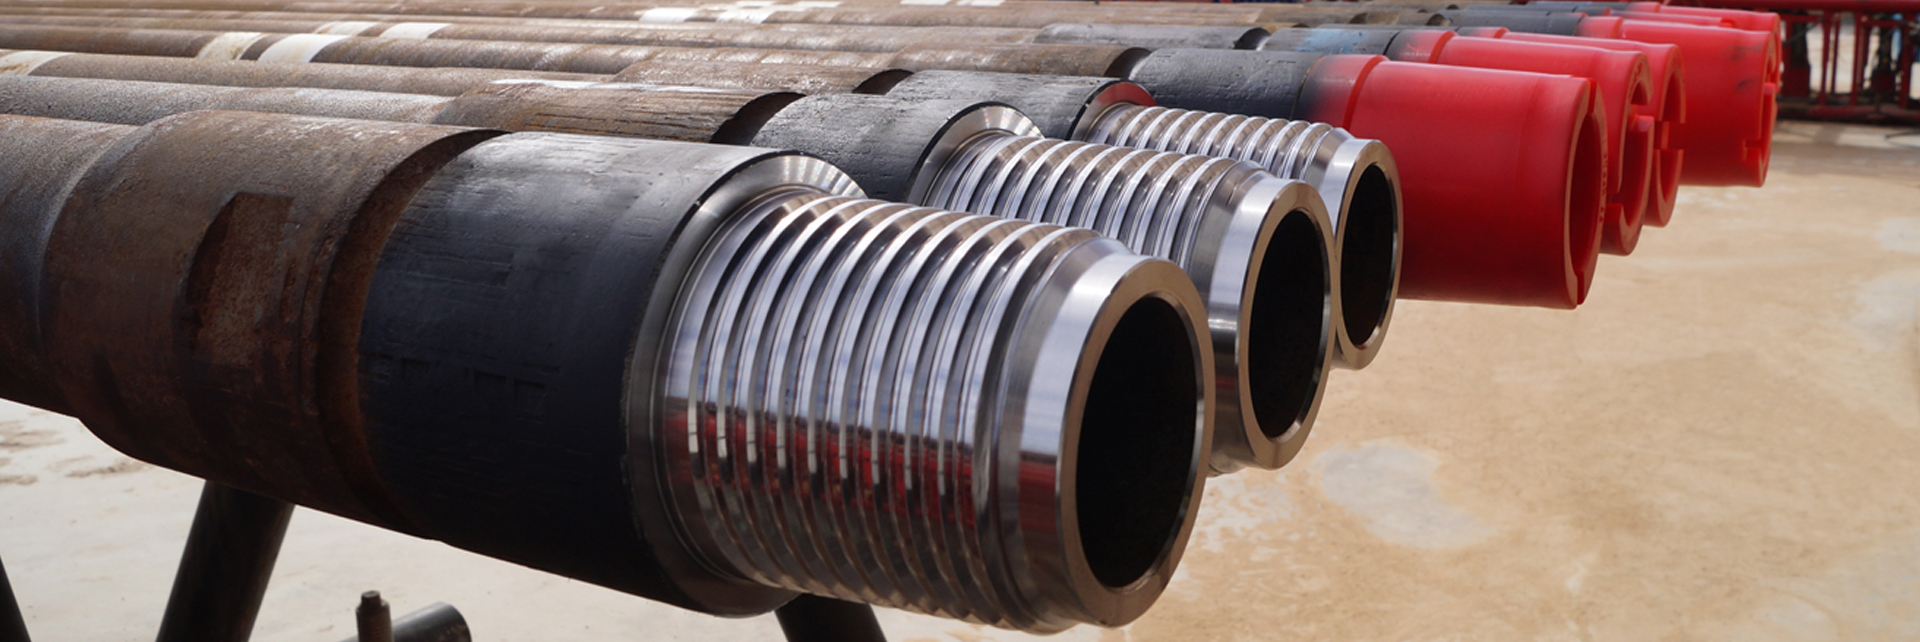 high-torque drill pipe